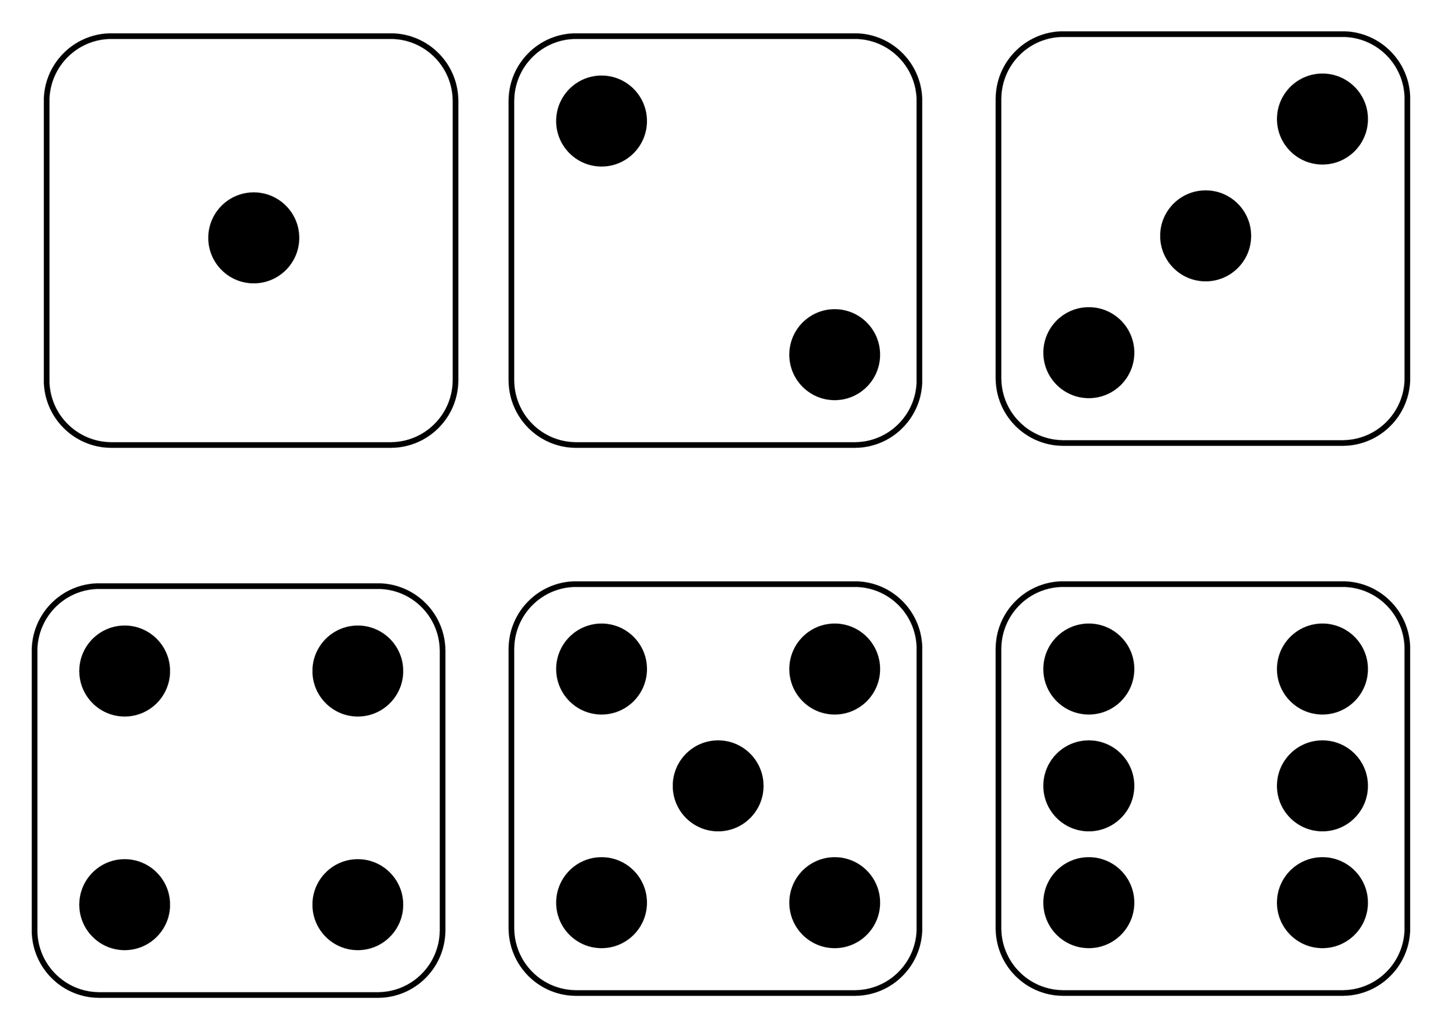 Free Dice Images Free, Download Free Clip Art, Free Clip Art.